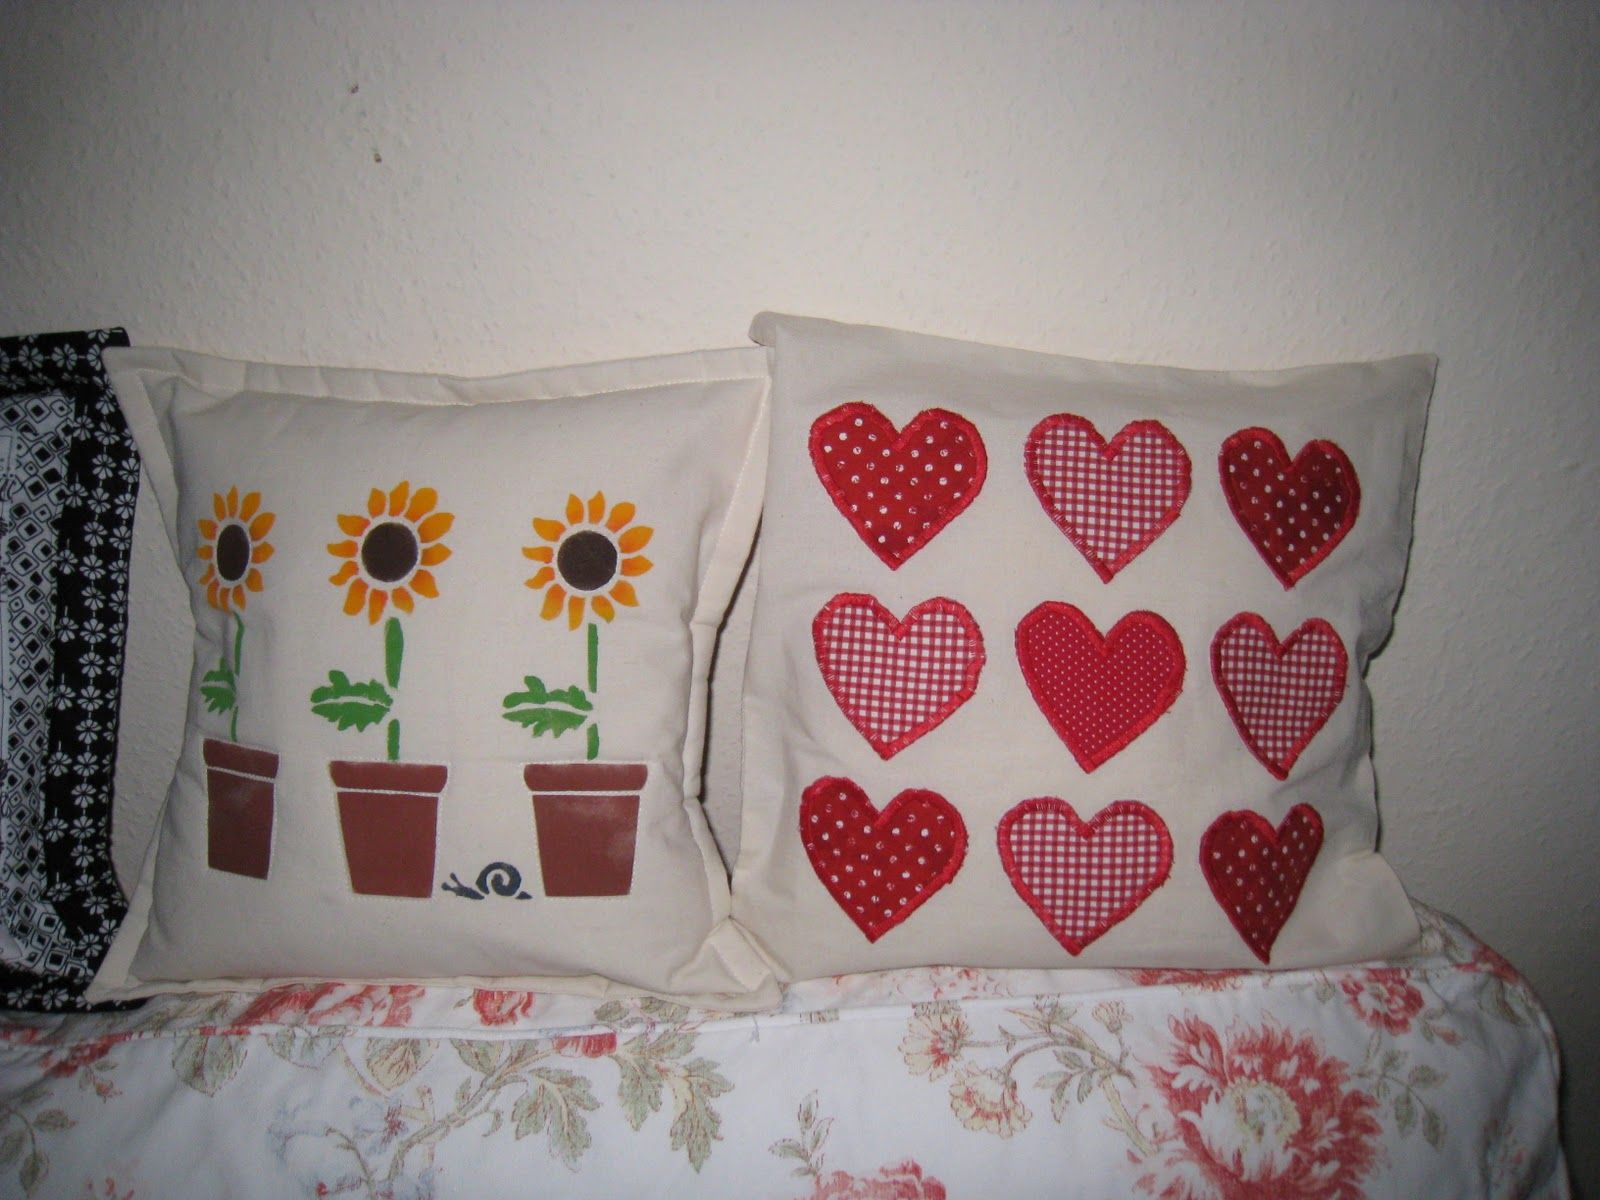 Homemade cushions - print and sew ideas